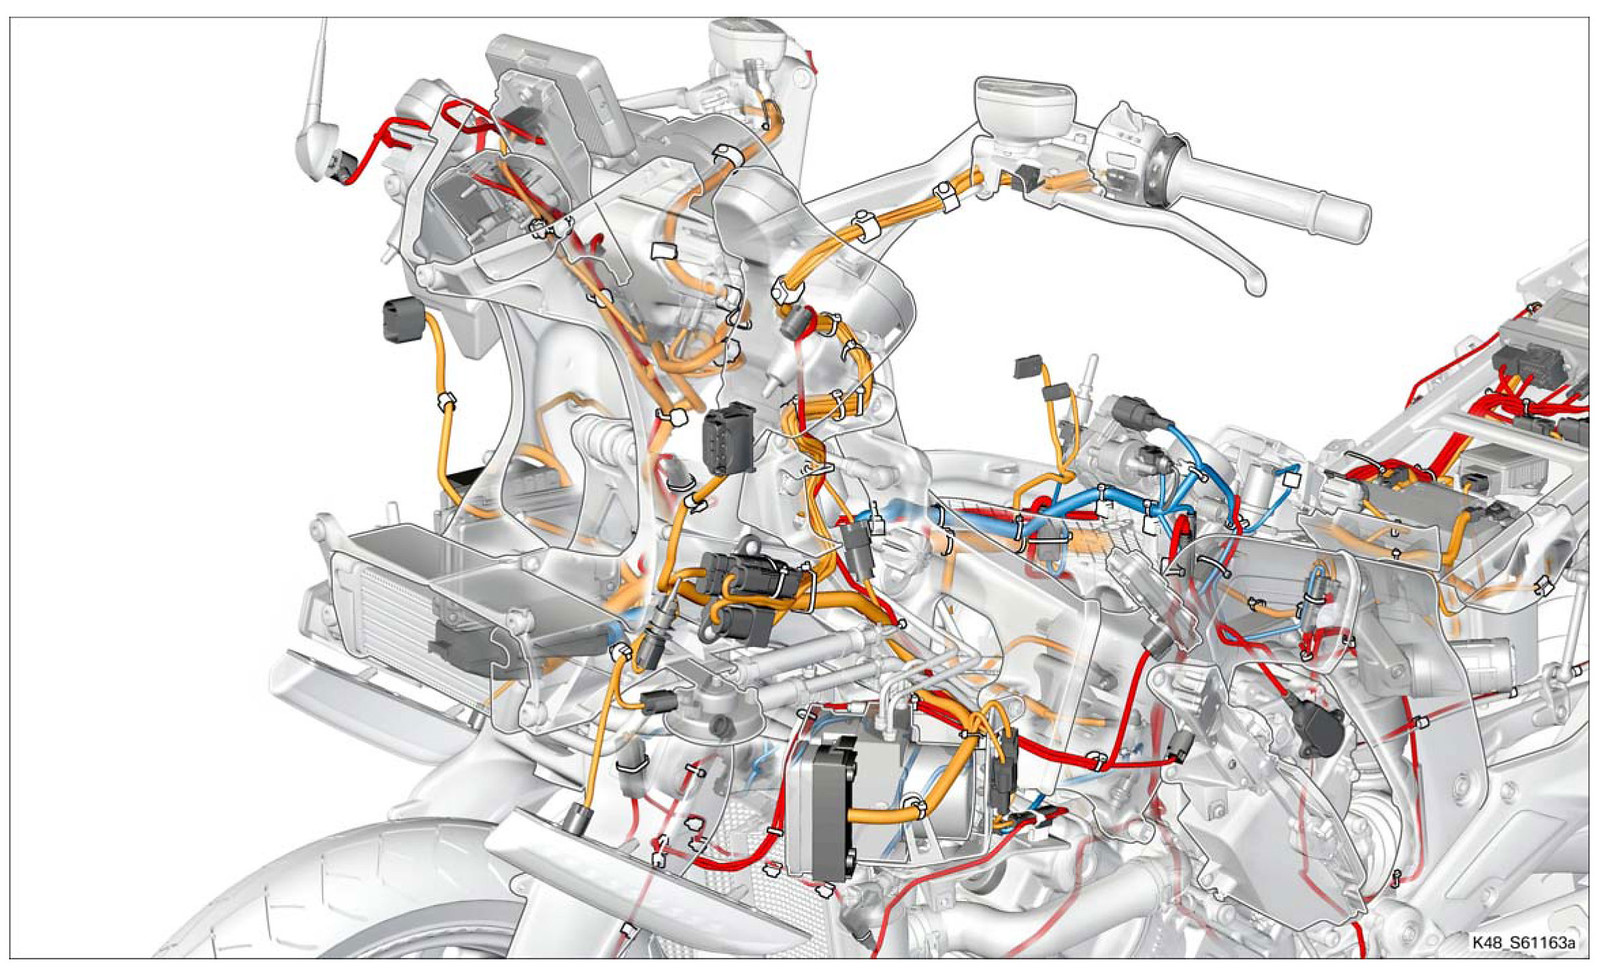 bmw gs 1200 wiring diagram freddryer co bmw wds wiring diagrams how the k1600 is wired bmw forum rh k1600forum r 1200 c diagram r1200gs